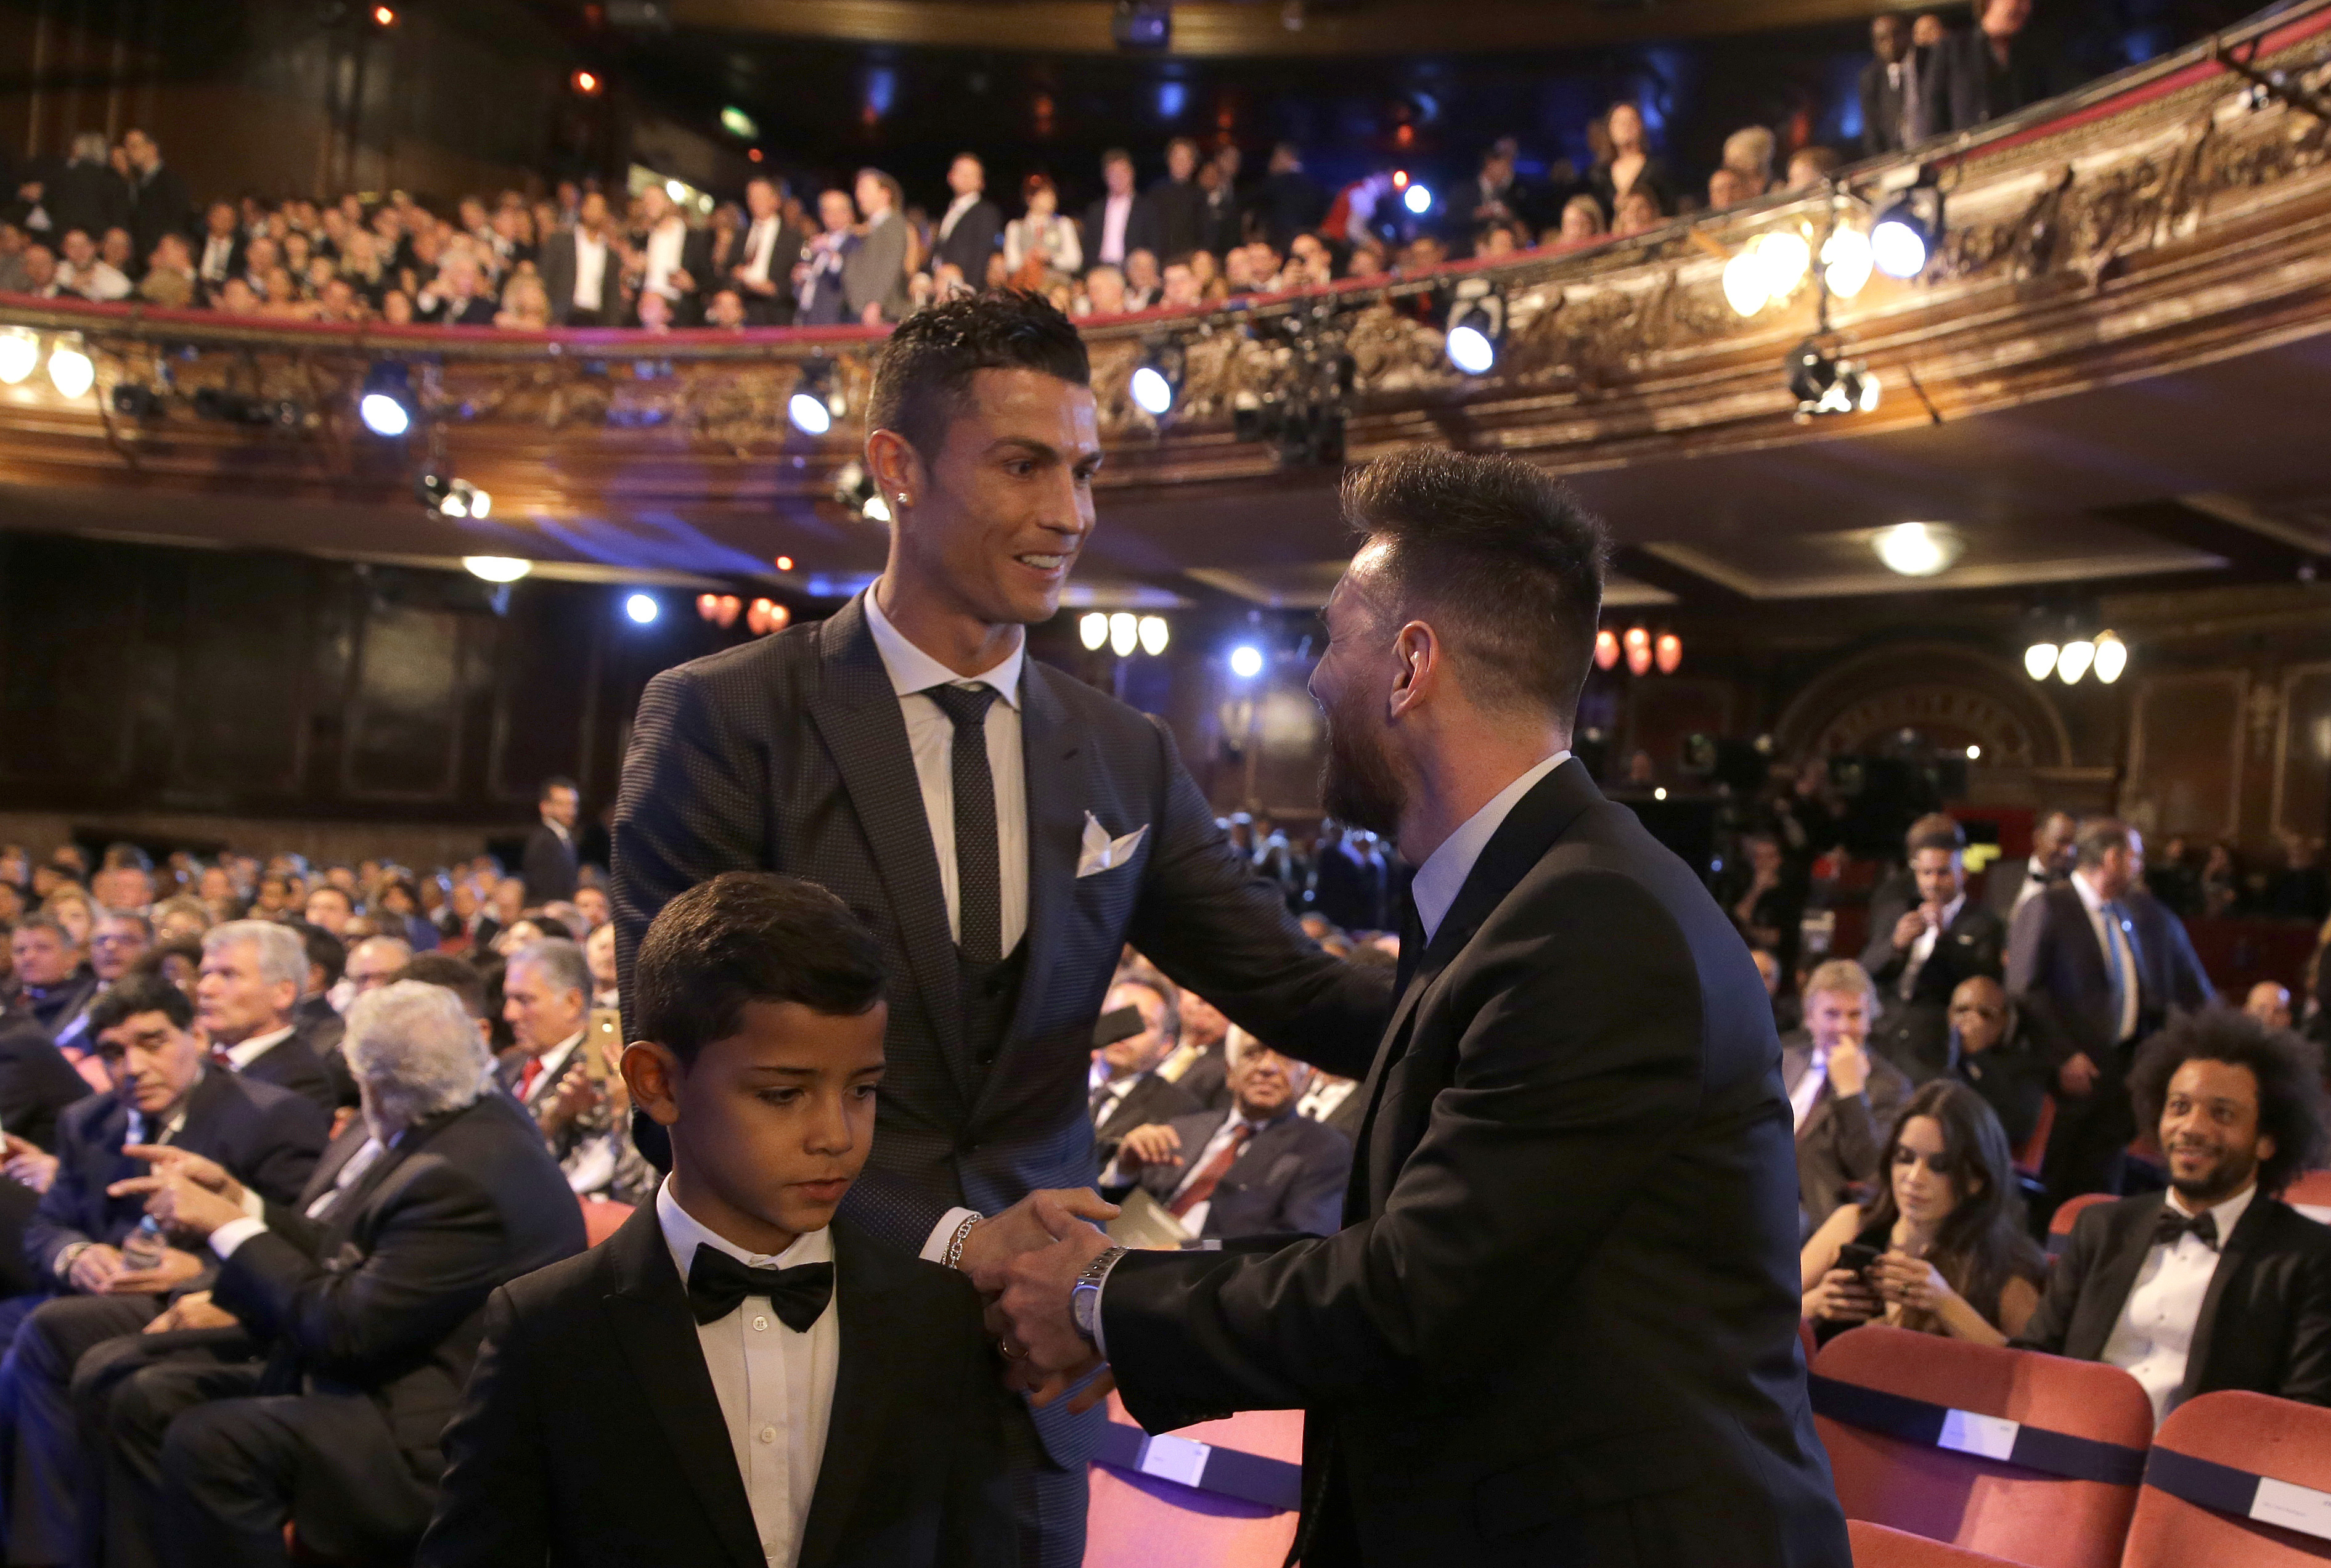 Cristiano Ronaldo wins FIFA's The Best award, edging Lionel Messi and Neymar